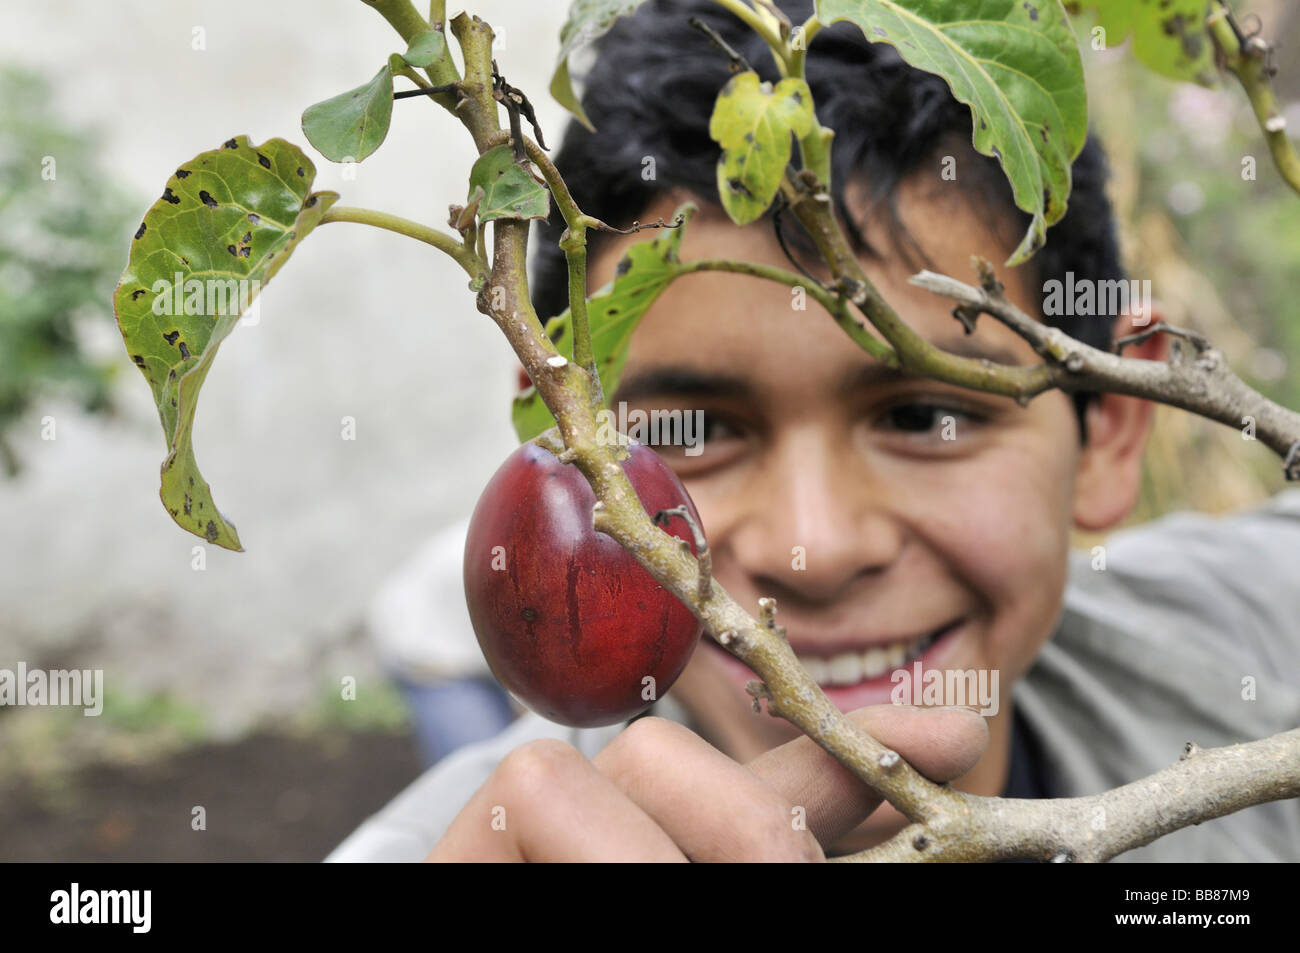 Teenager being delighted about a ripe Tamarillo fruit (Solanum betaceum), He is being trained in horticulture as - Stock Image